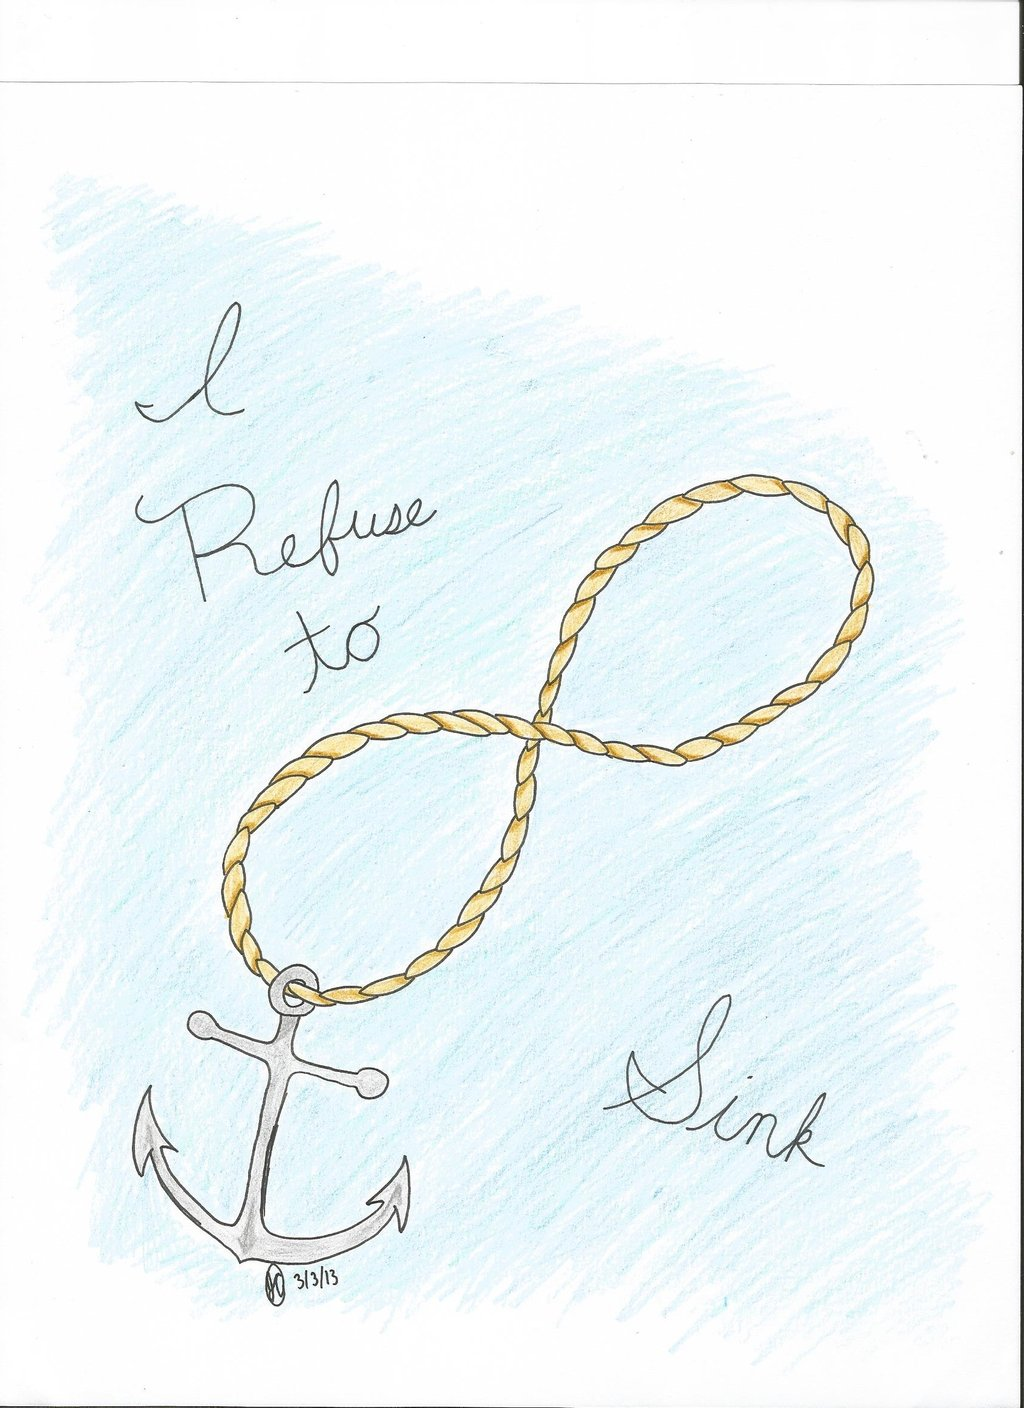 Drawn anchor infinity sign Infinity Images Wallpaper & Becuo